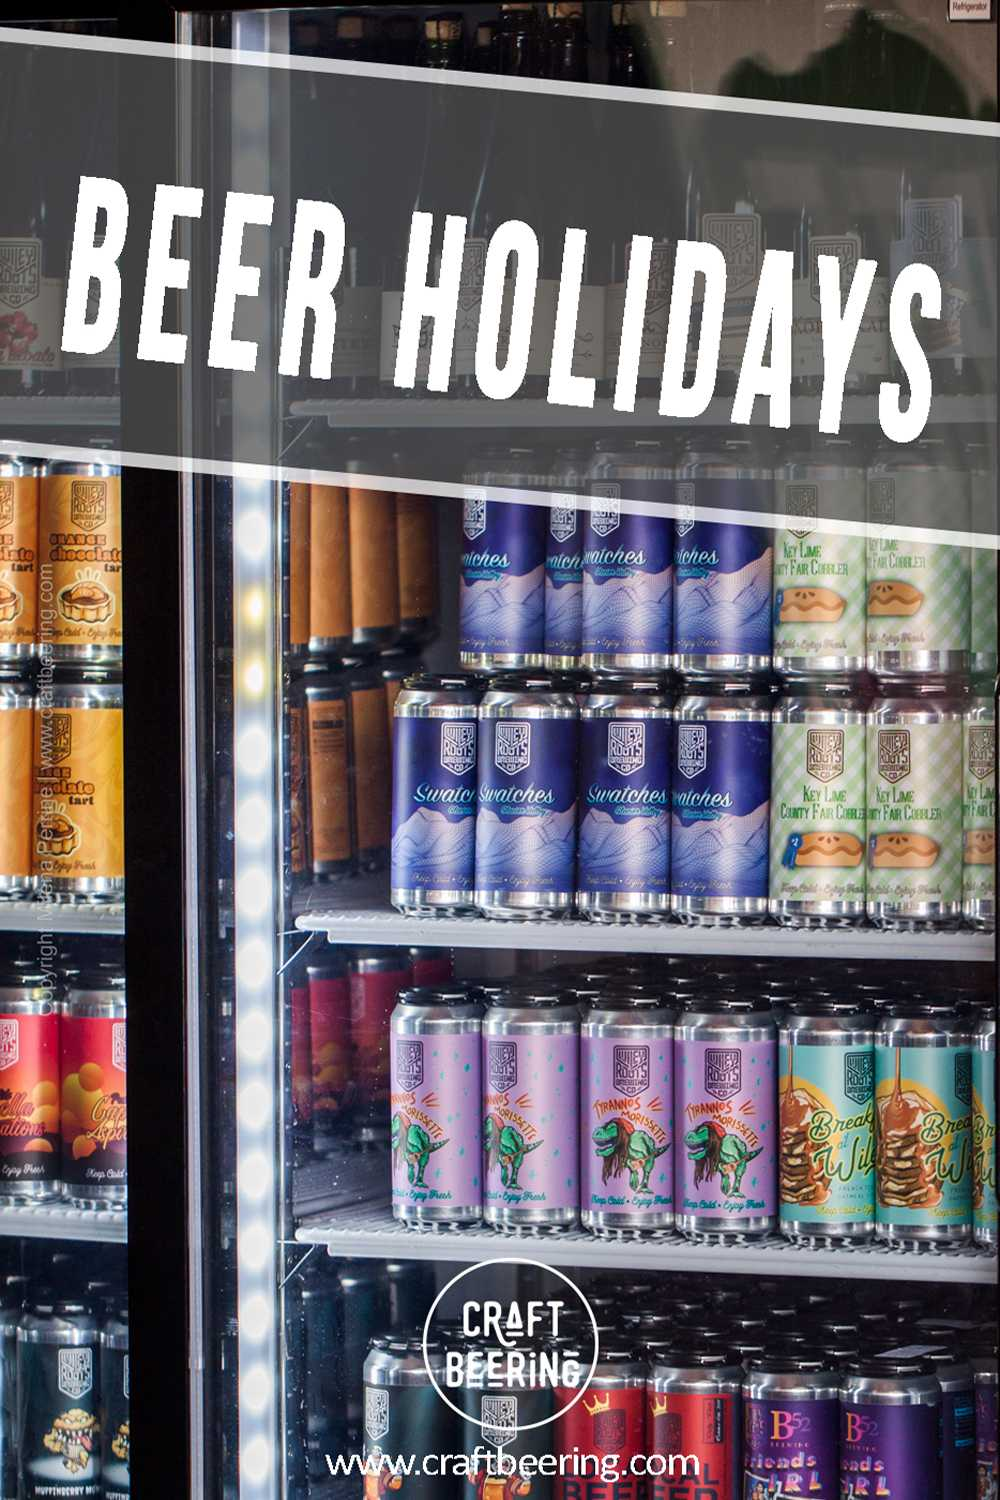 Beer holidays in the US and around the world.